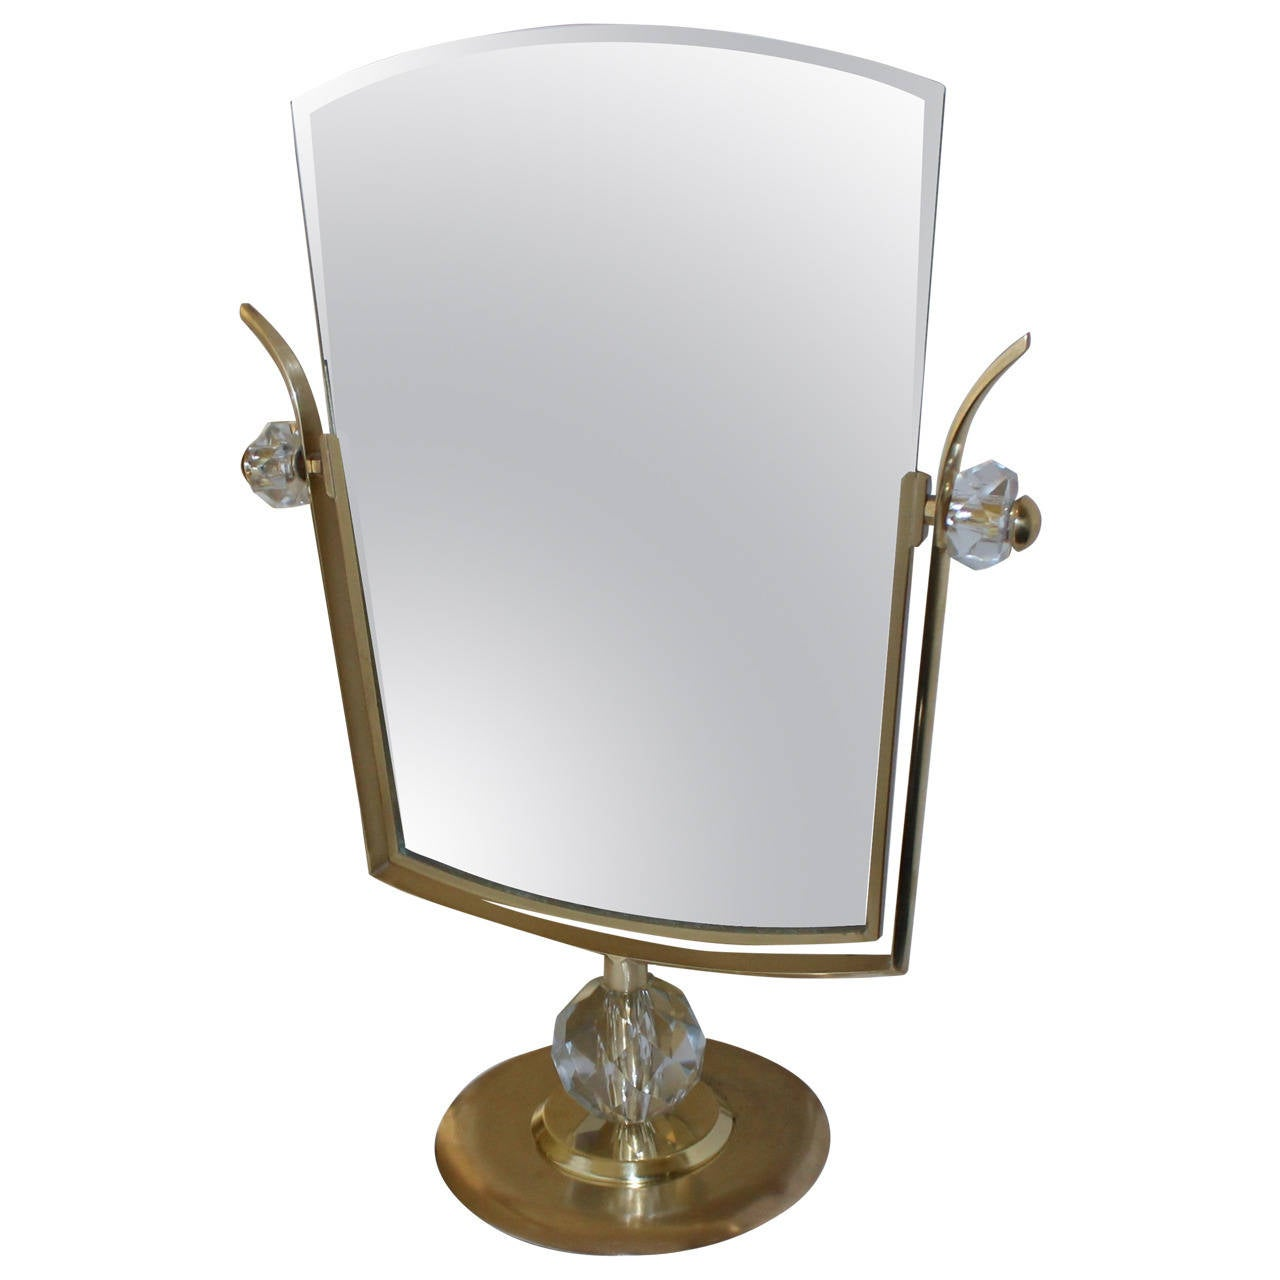 Large italian gio ponti style brass vanity mirror at 1stdibs for Large vanity mirror